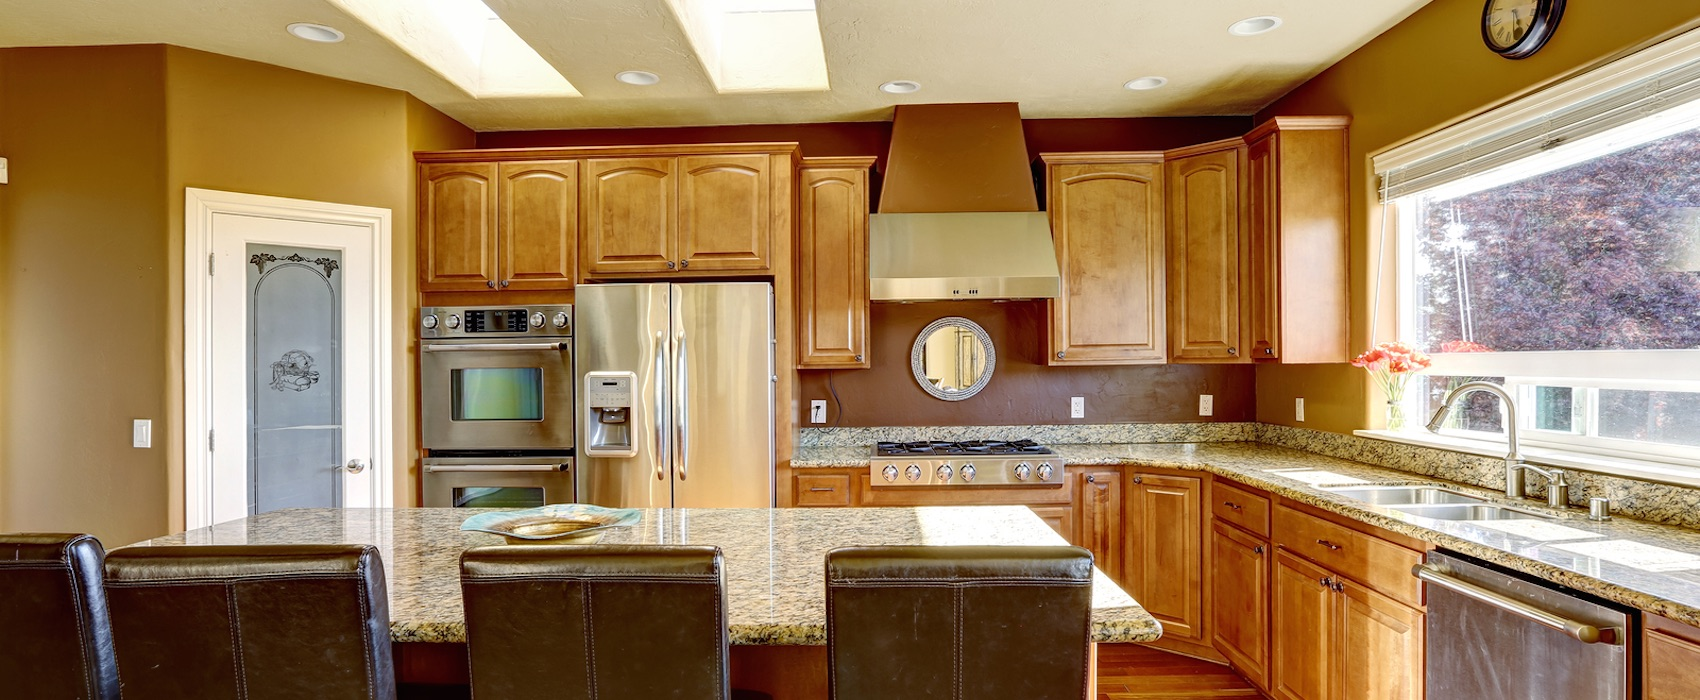 Granite Depot Denver Colorado | Granite Countertops Denver Colorado | Kitchen Cabinets Denver | Kitchen Remodeling Denver & Granite Depot Denver Colorado | Granite Countertops Denver Colorado ...